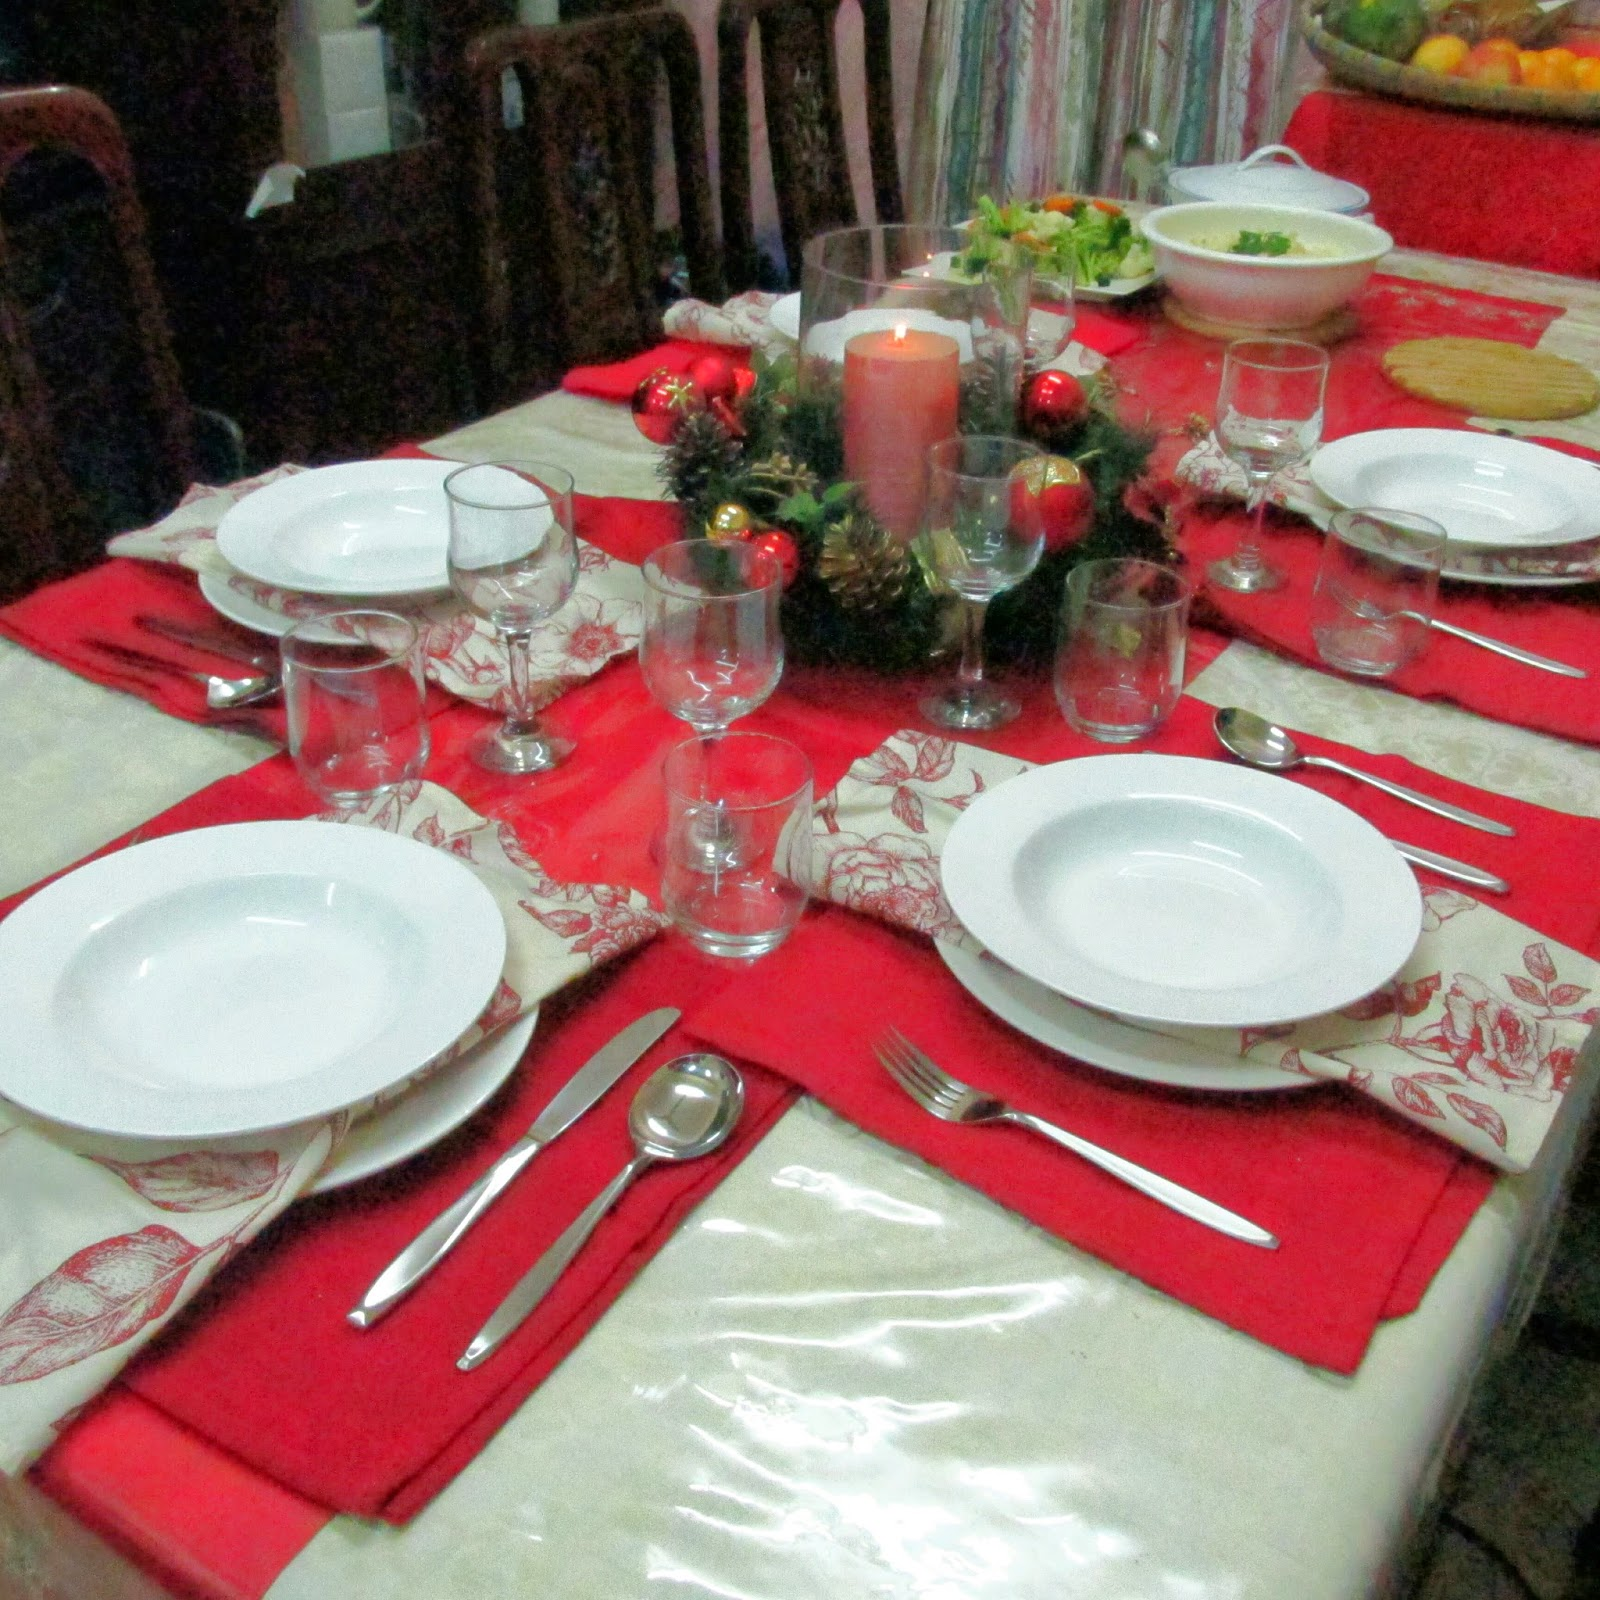 Darlene's Dinner Table at Christmas